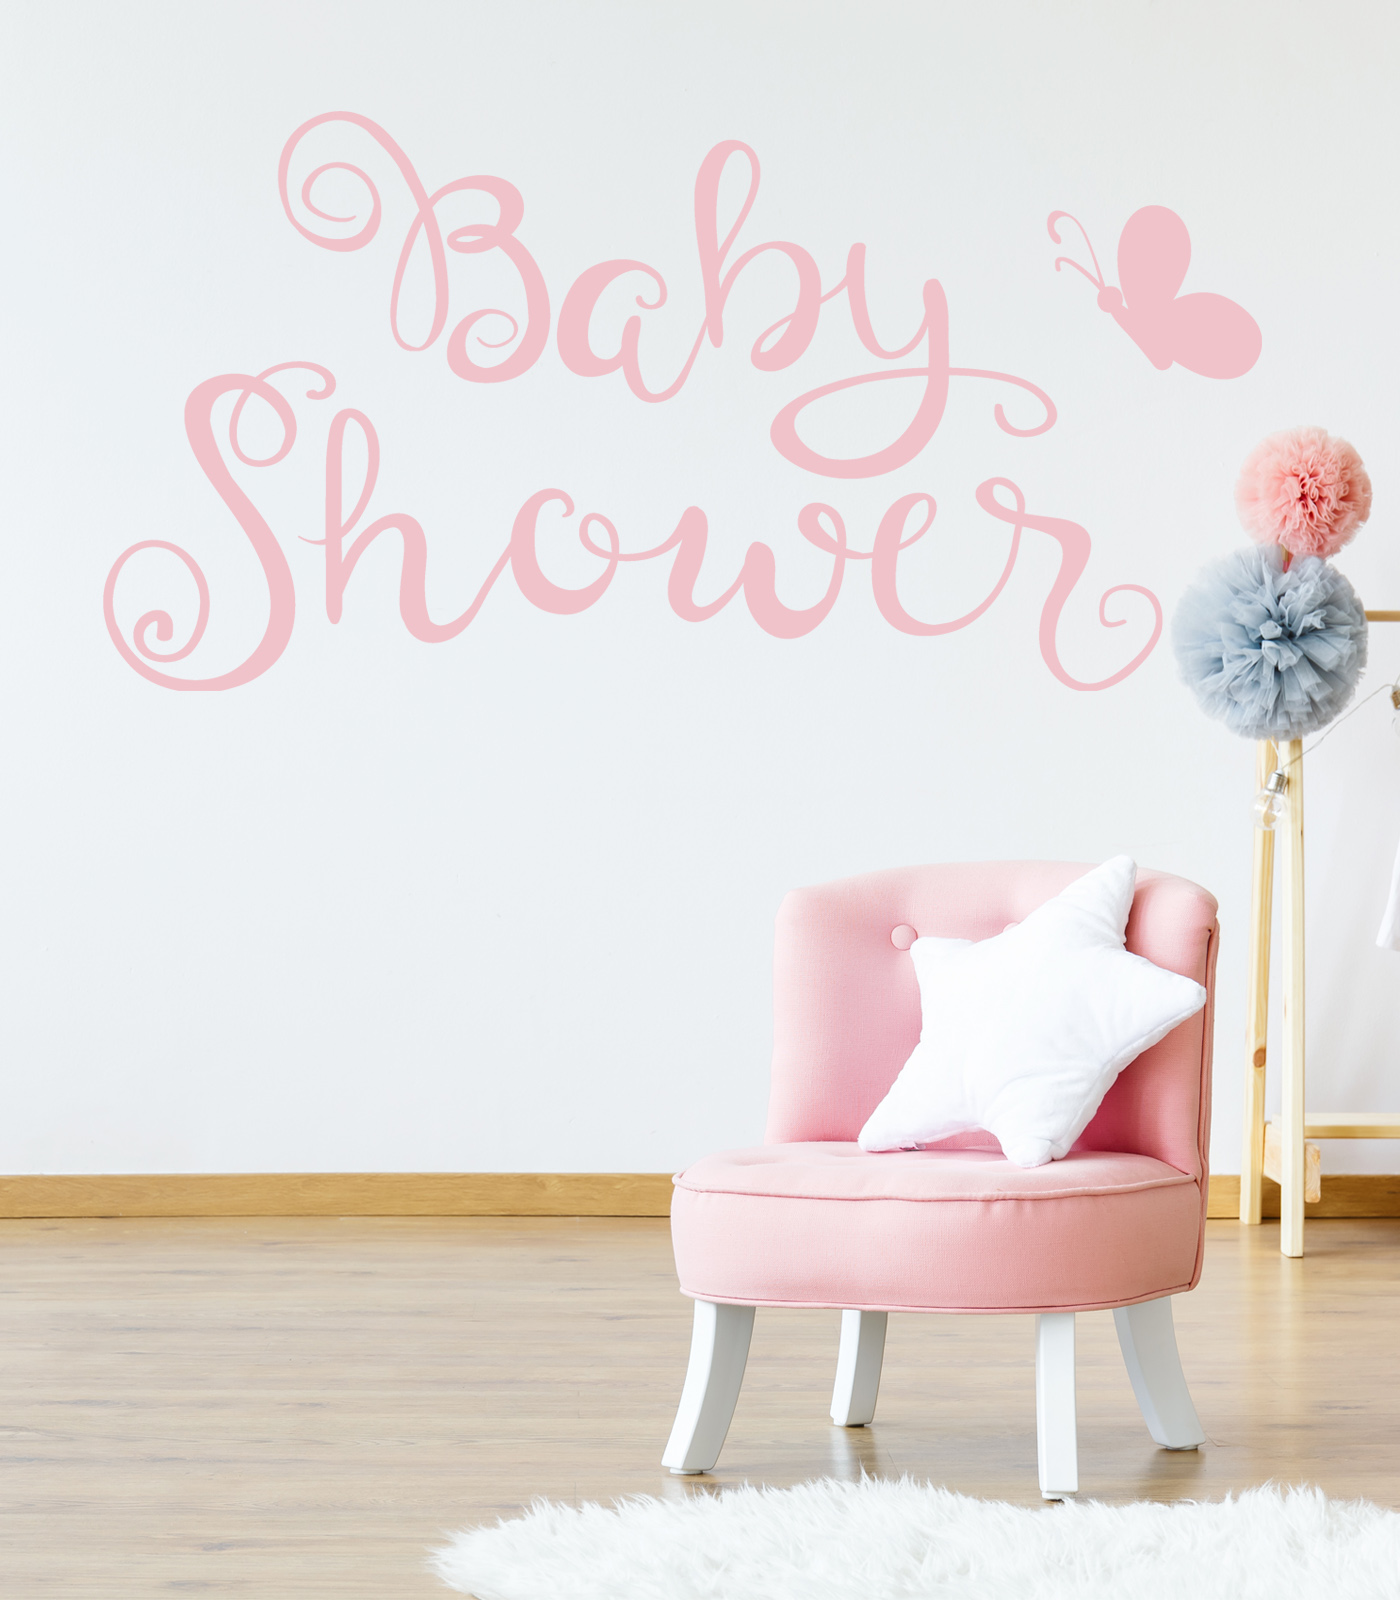 baby Shower - decoravinilos